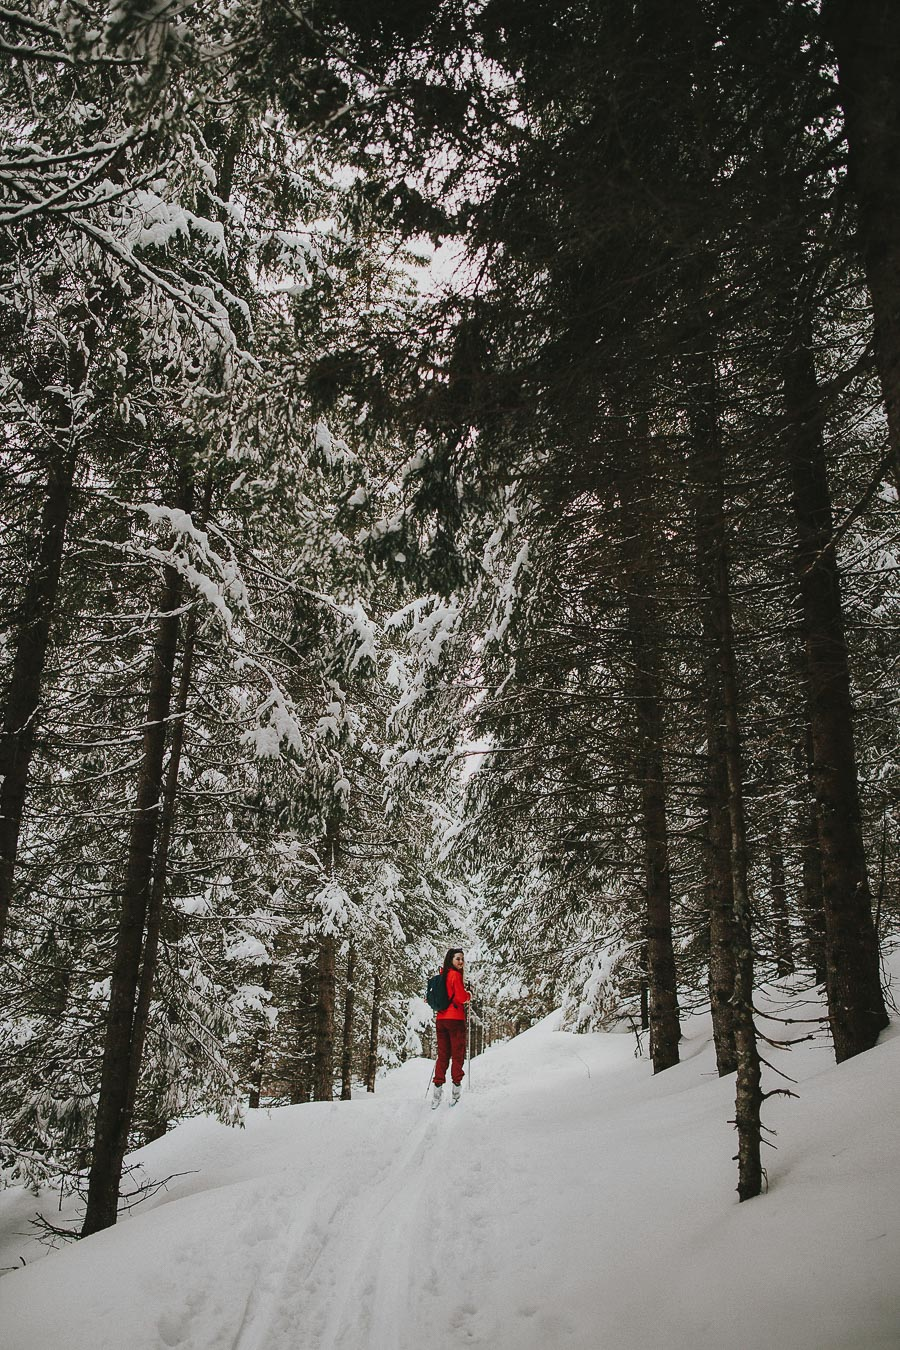 Girl in red jacket surronded by tall trees